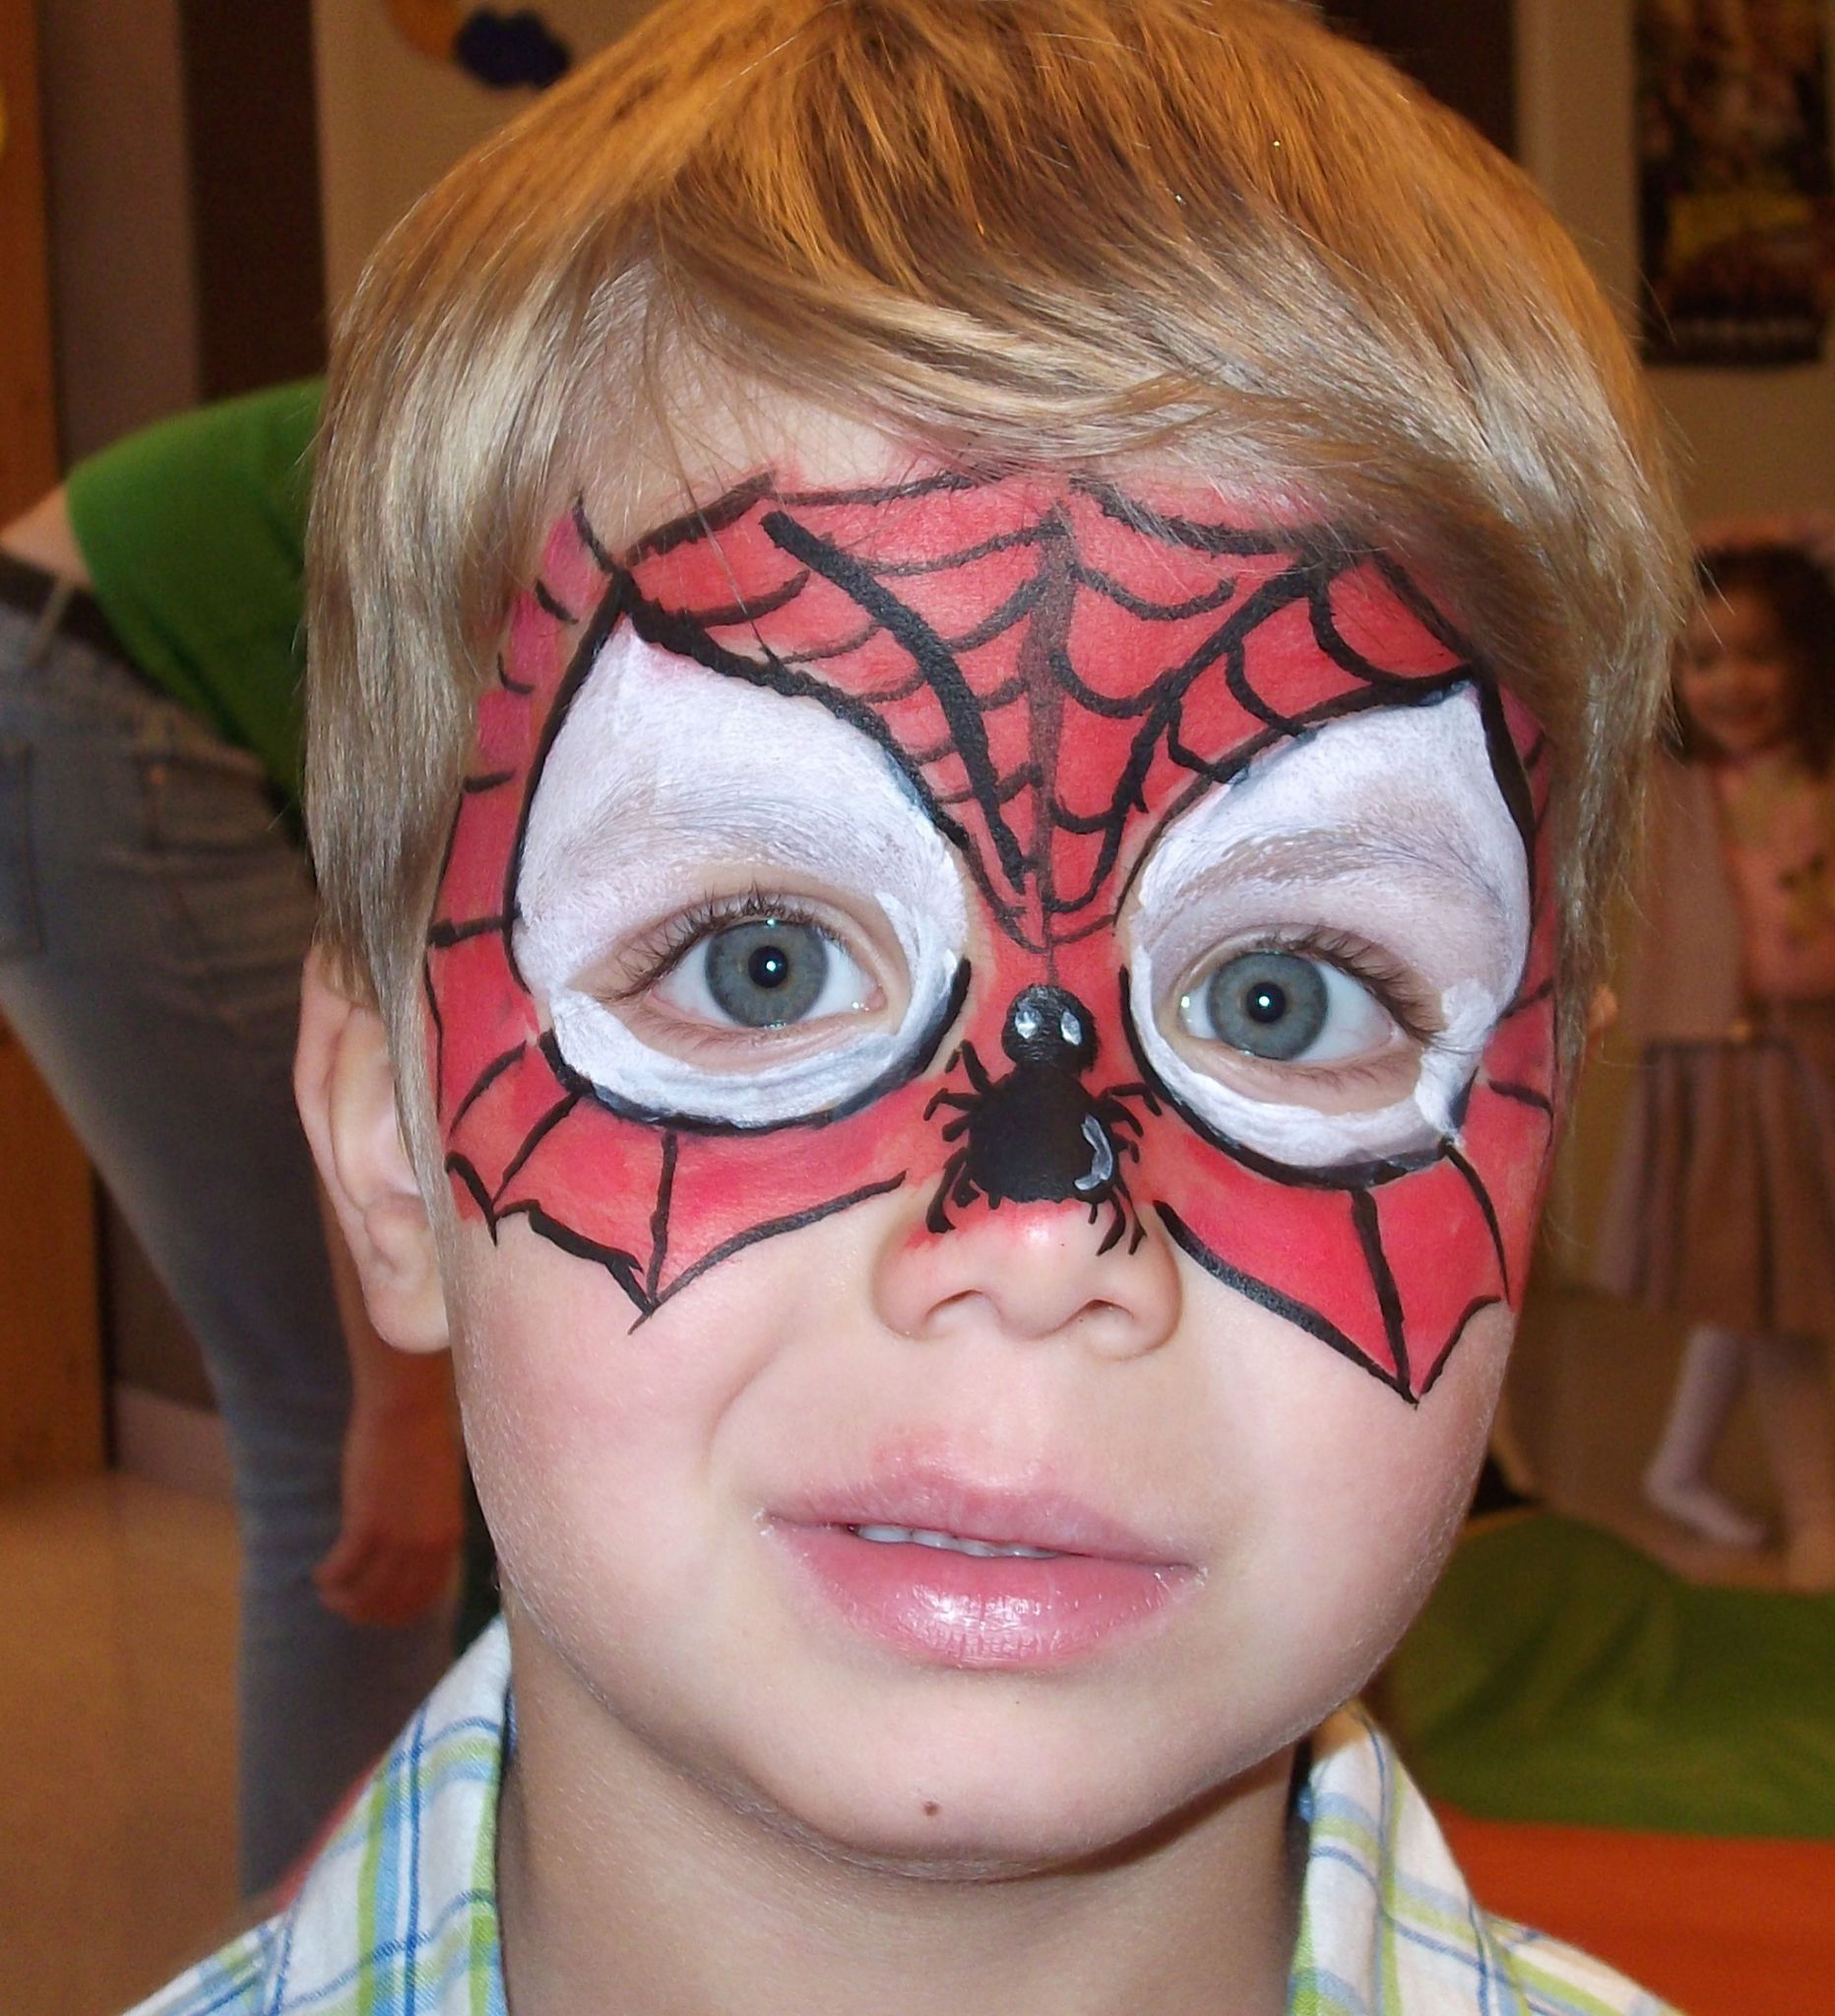 Maquillage spiderman facile google search crafts pinterest spiderman et recherche - Maquillage simple enfant ...